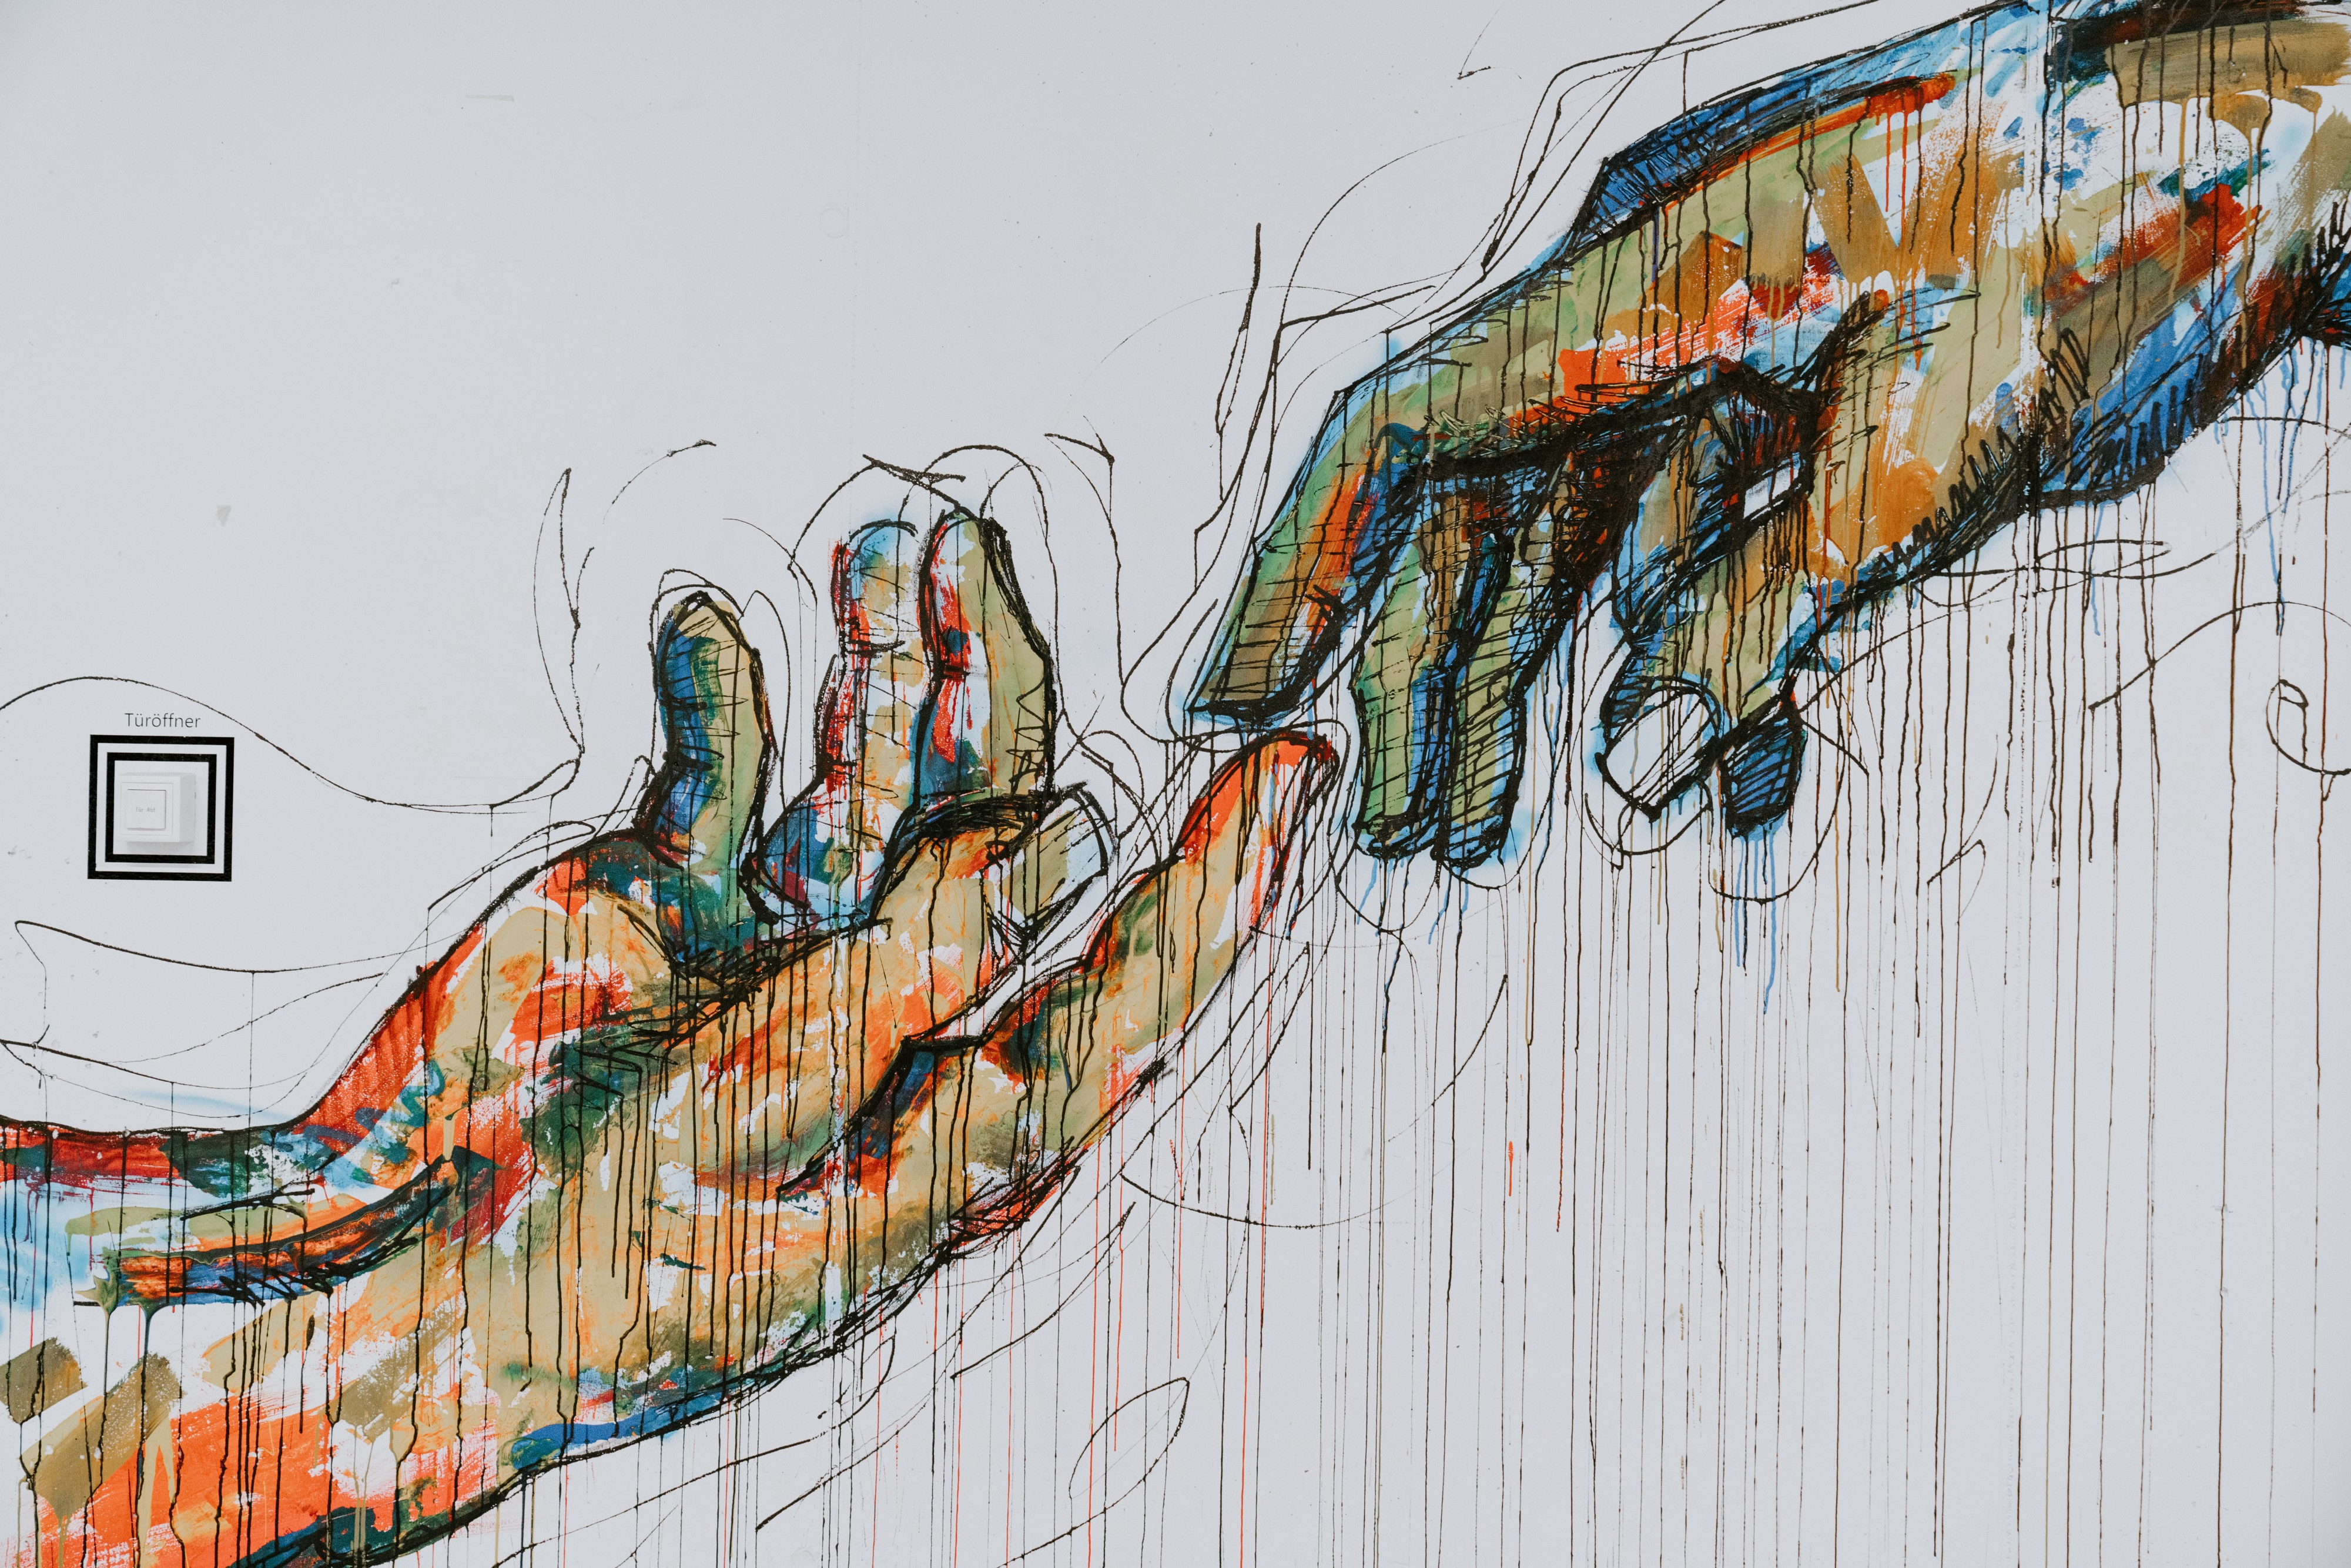 Sketches of hands where one person's seems to be lifting the other